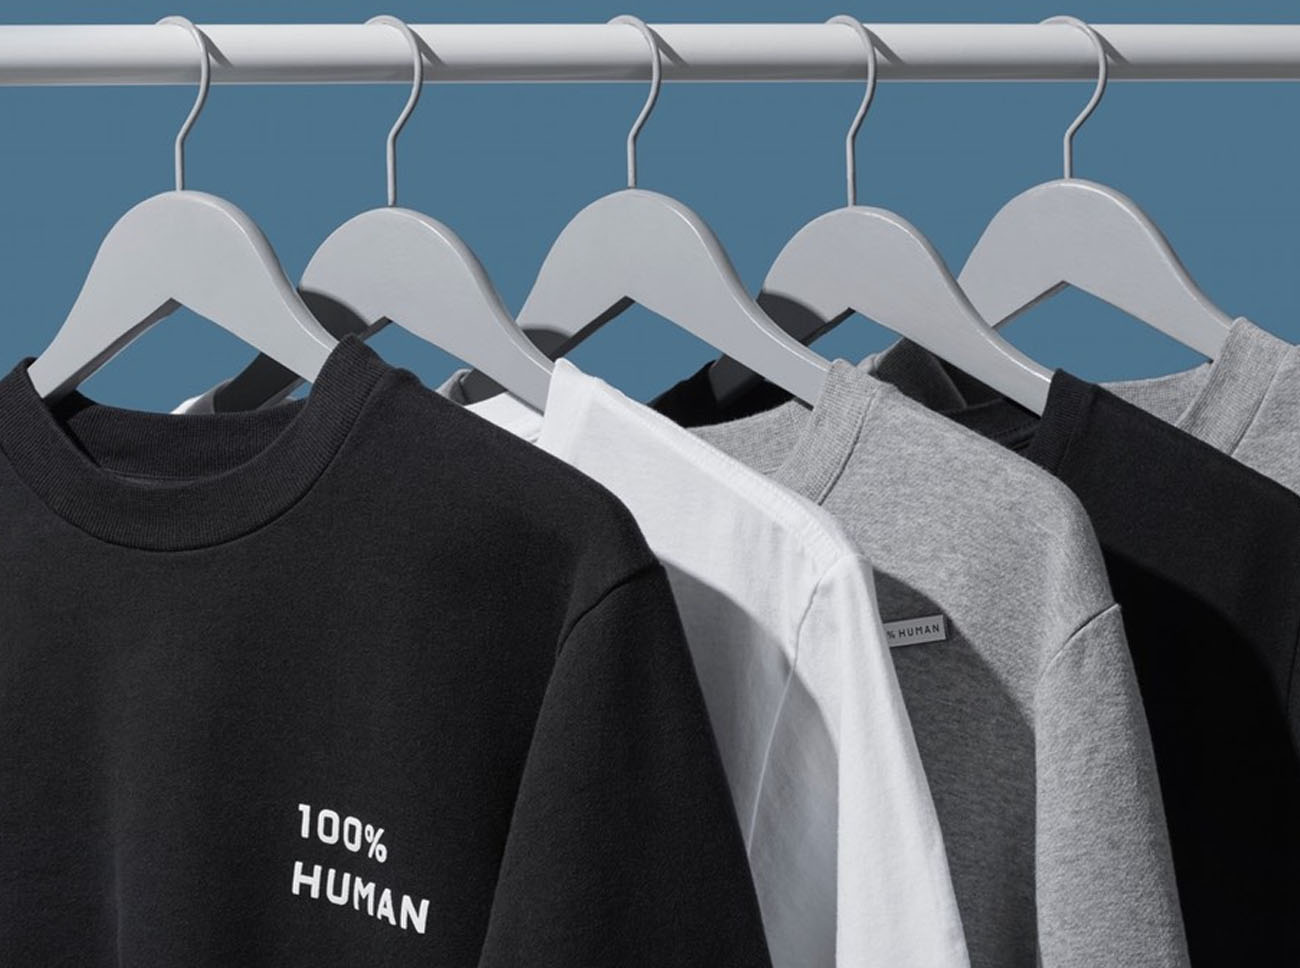 Everlane 100% Human Collection